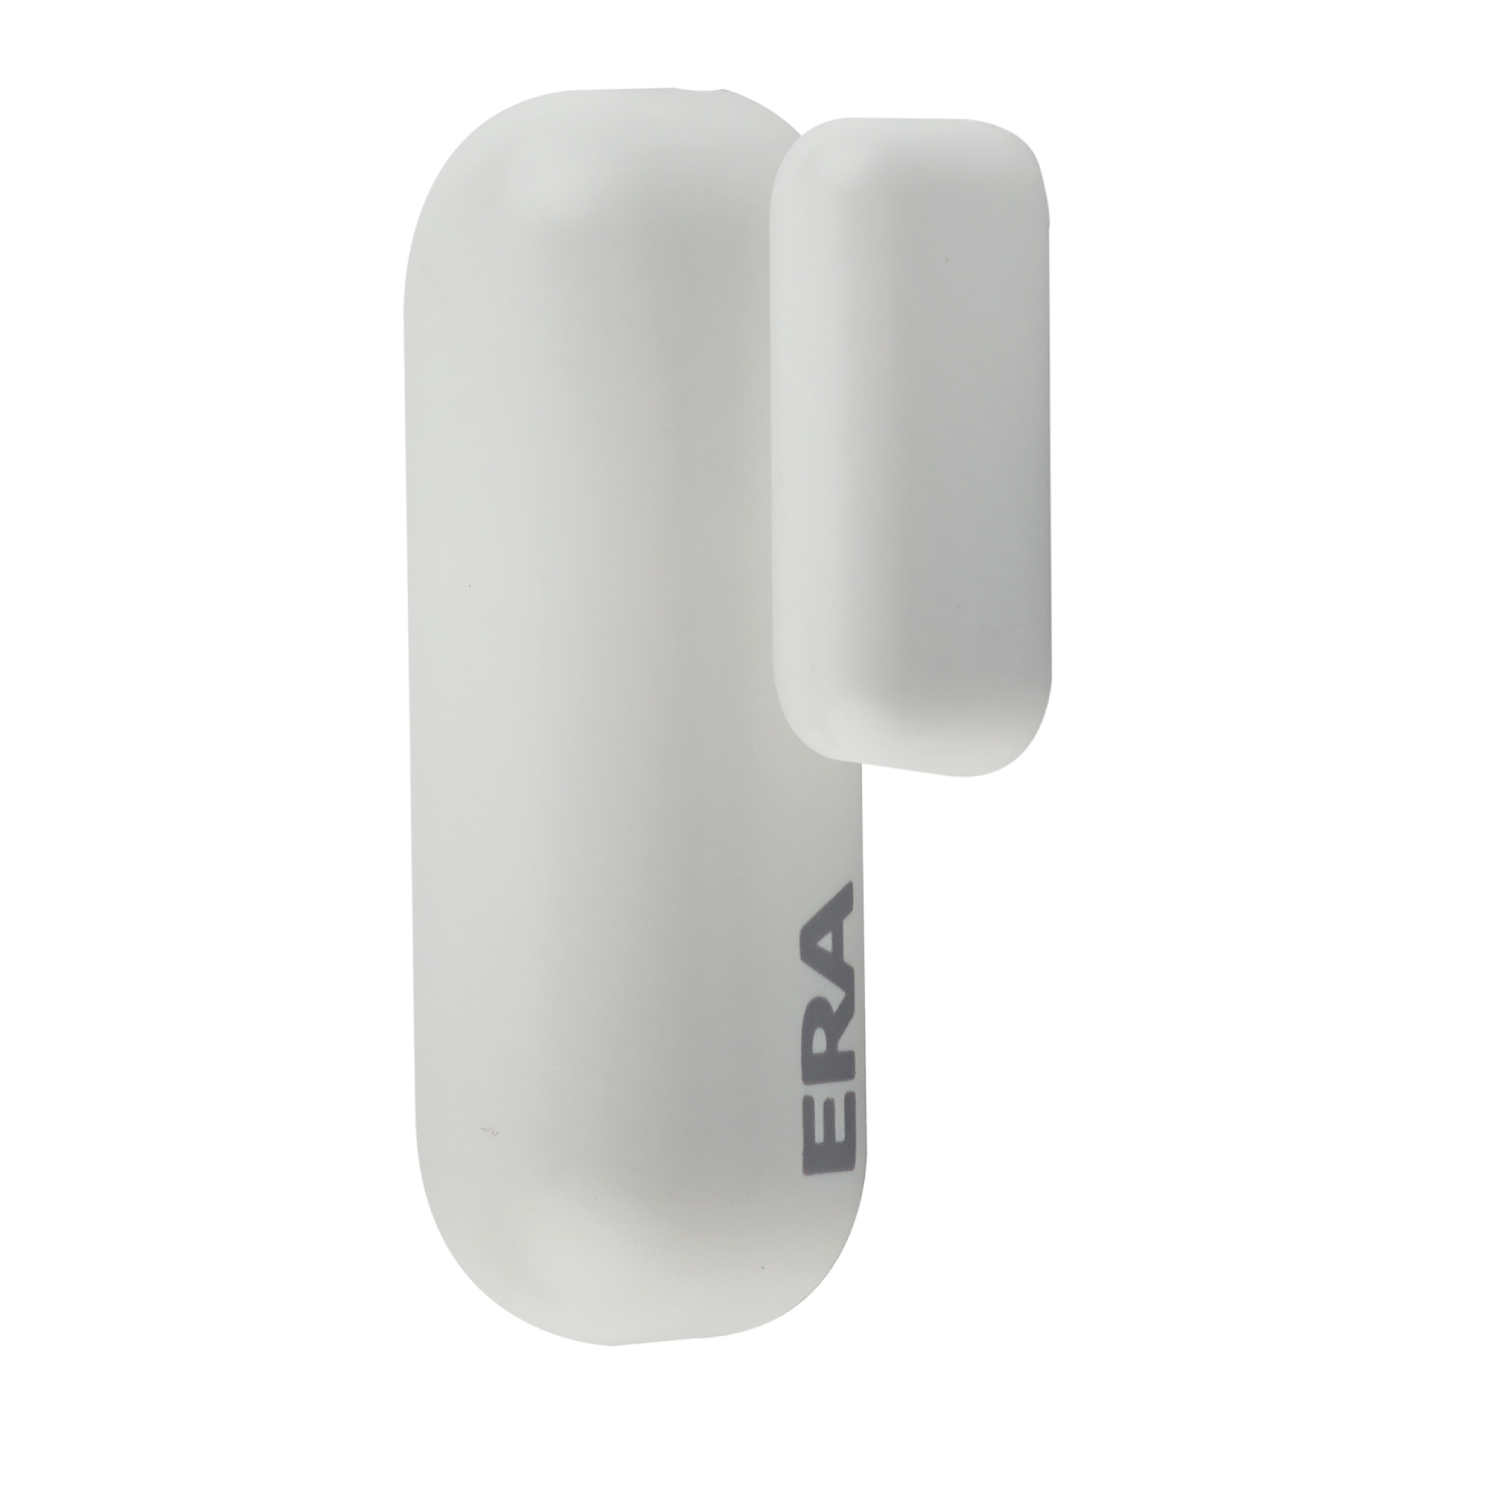 ERA Protect Wireless Door/ Window Sensor